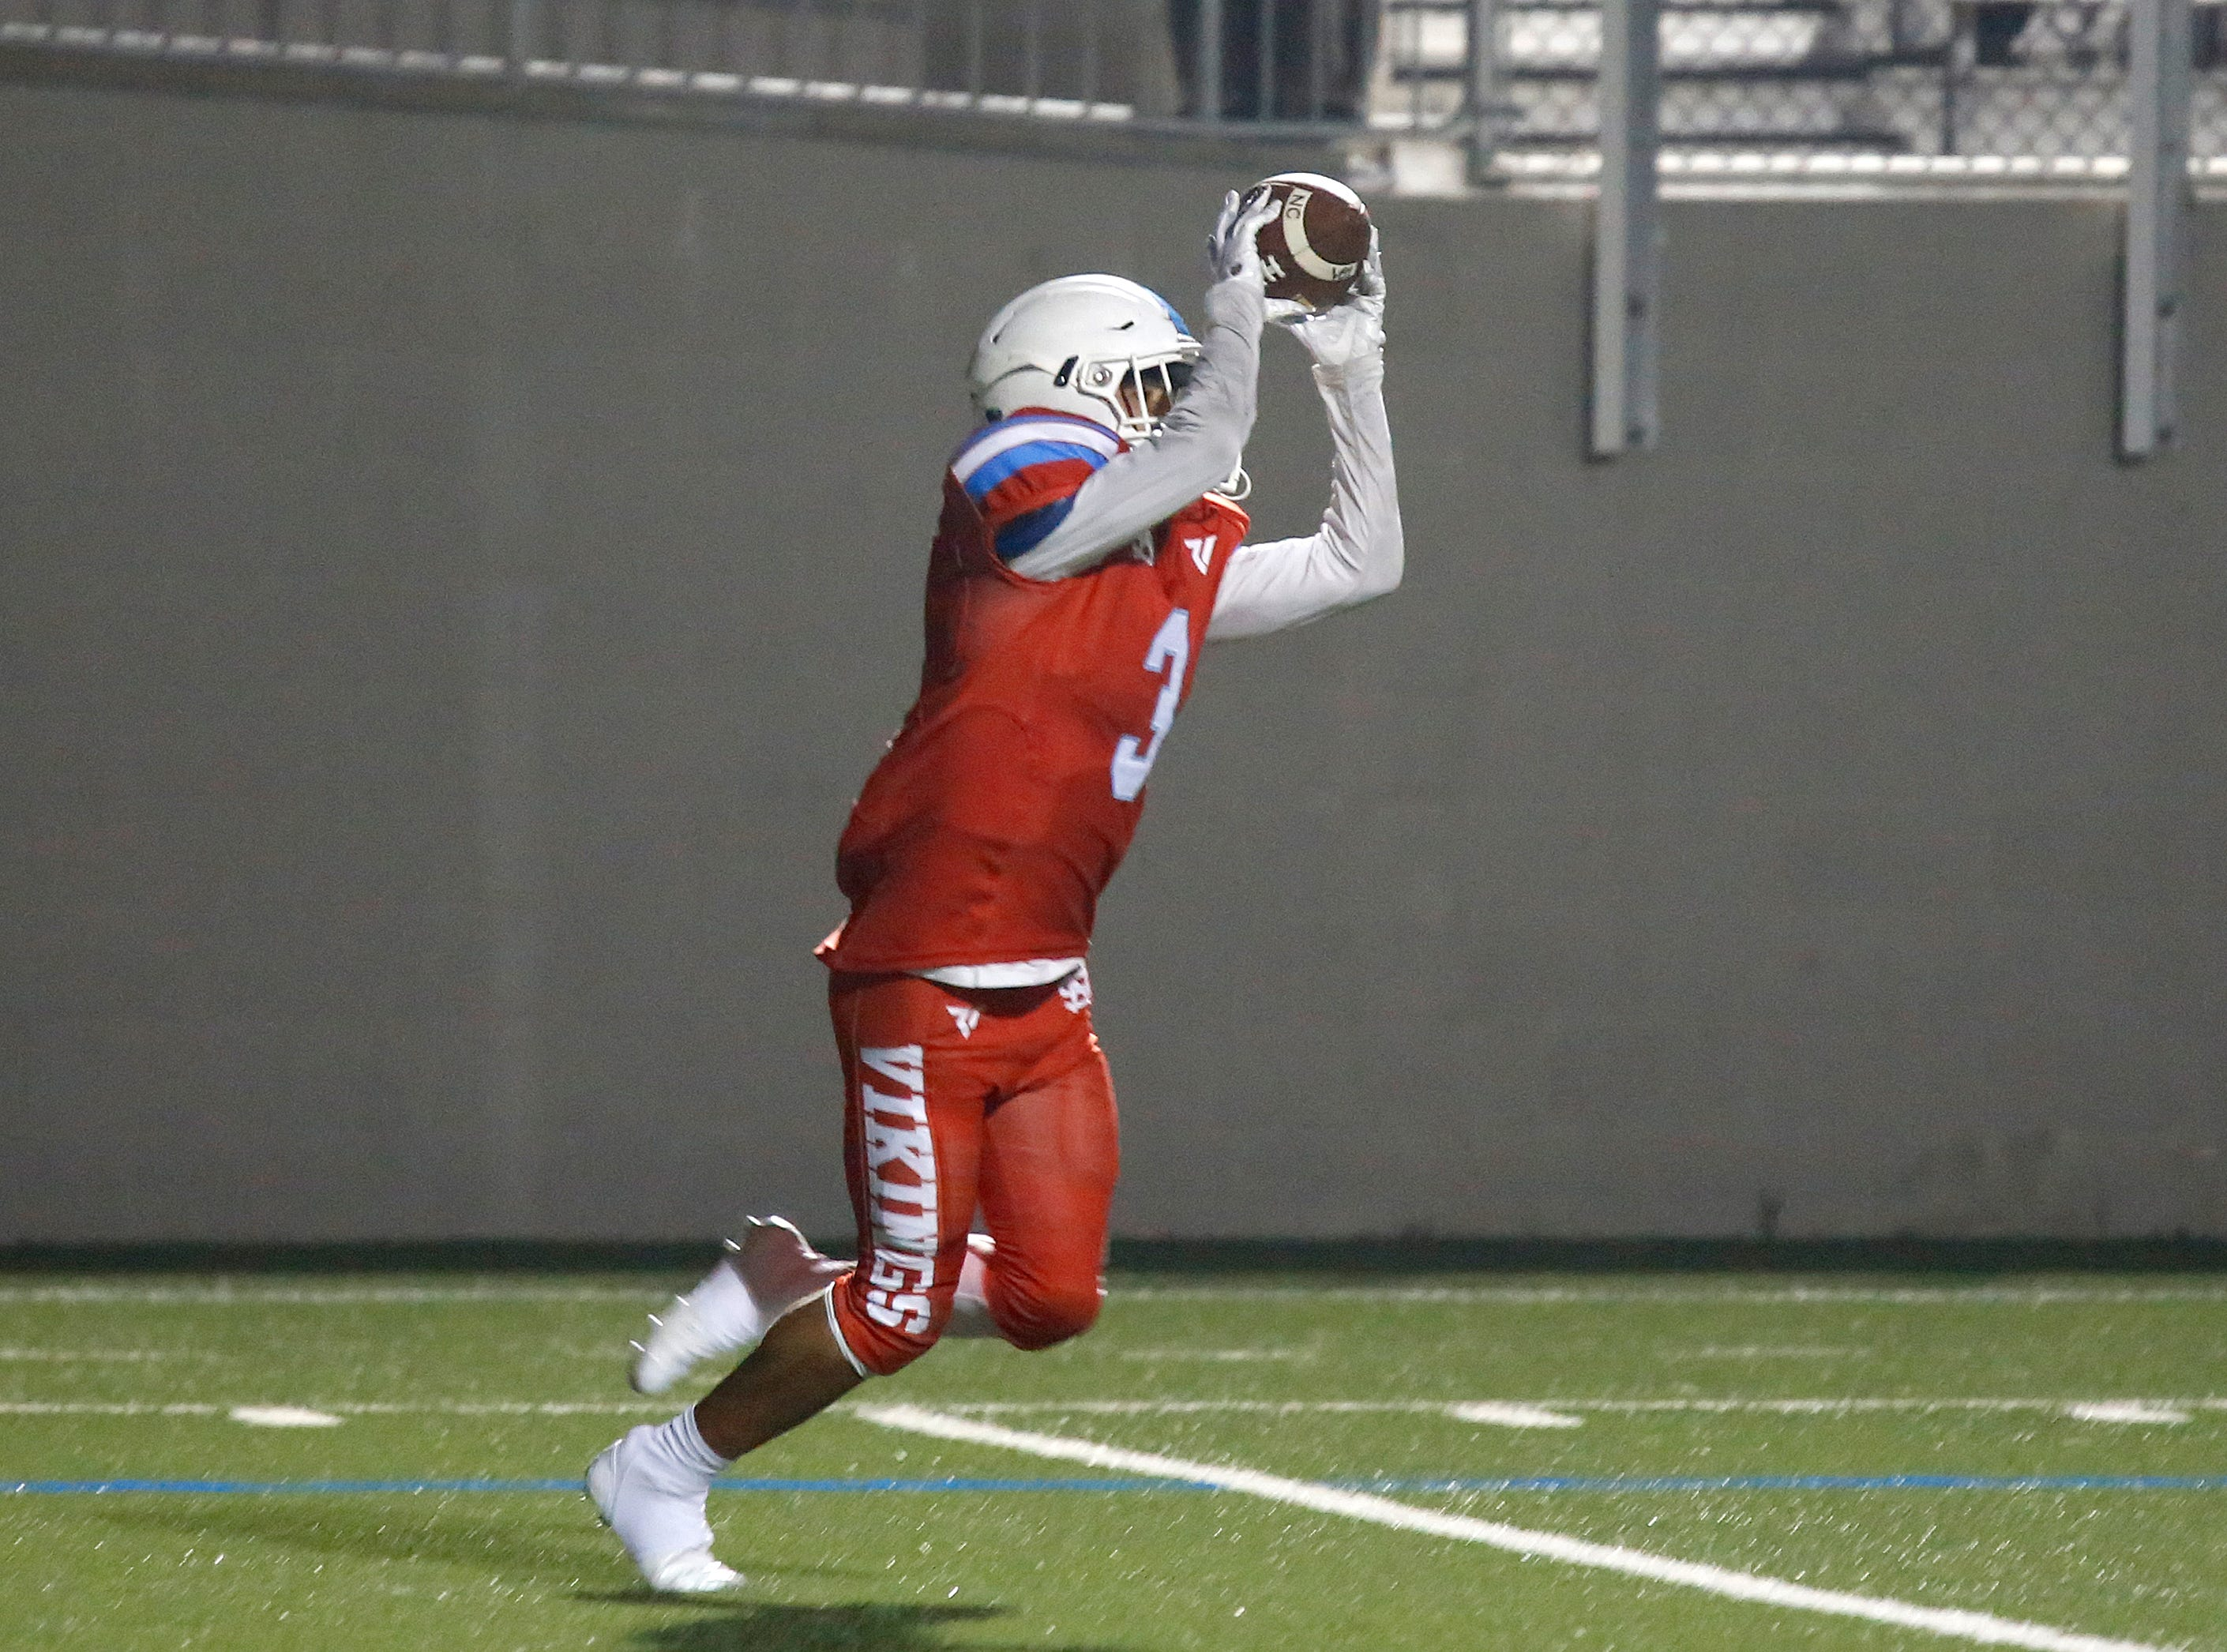 North Salinas's Manuel Camberos reels in an interception against North Monterey County during football at Rabobank Stadium in Salinas on Thursday August 23, 2018.